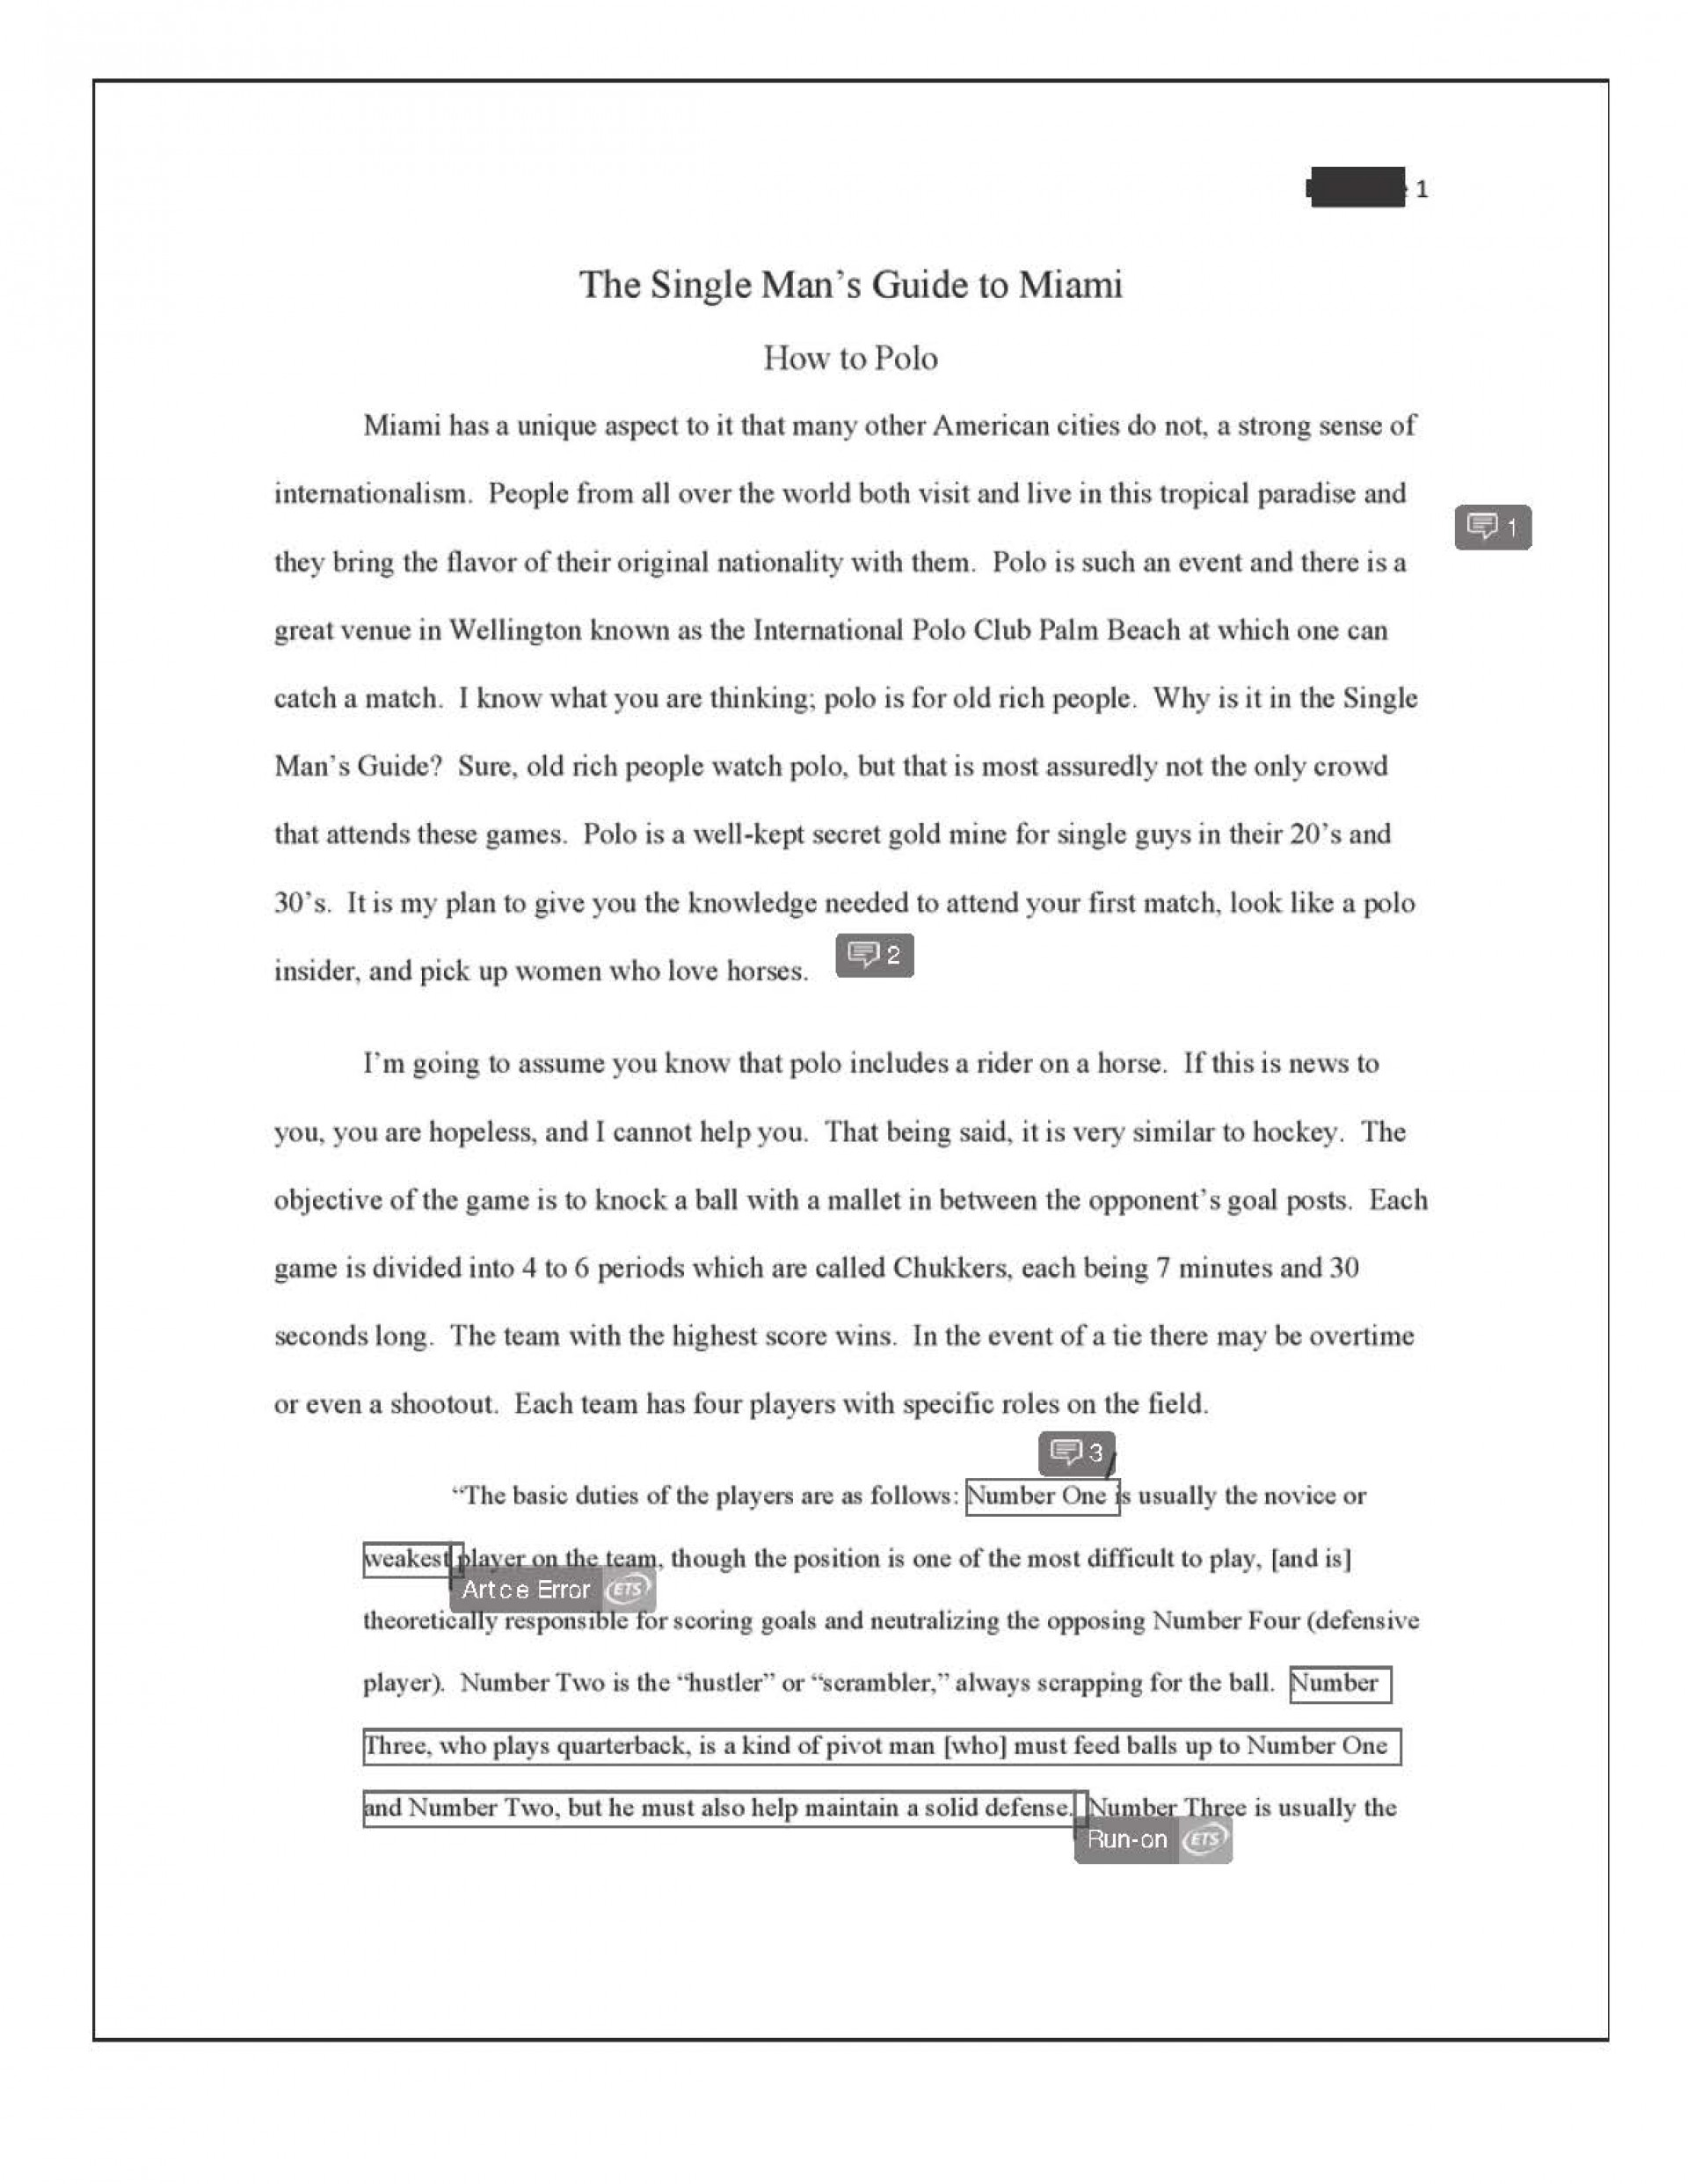 007 Informative Essay Kinds Of Writing Types Essays The Center In Hindi Final How To Polo Redacted P Pdf Task Slideshare Ppt Withs Wikipedia Dreaded Ideas Rubric 6th Grade 1920